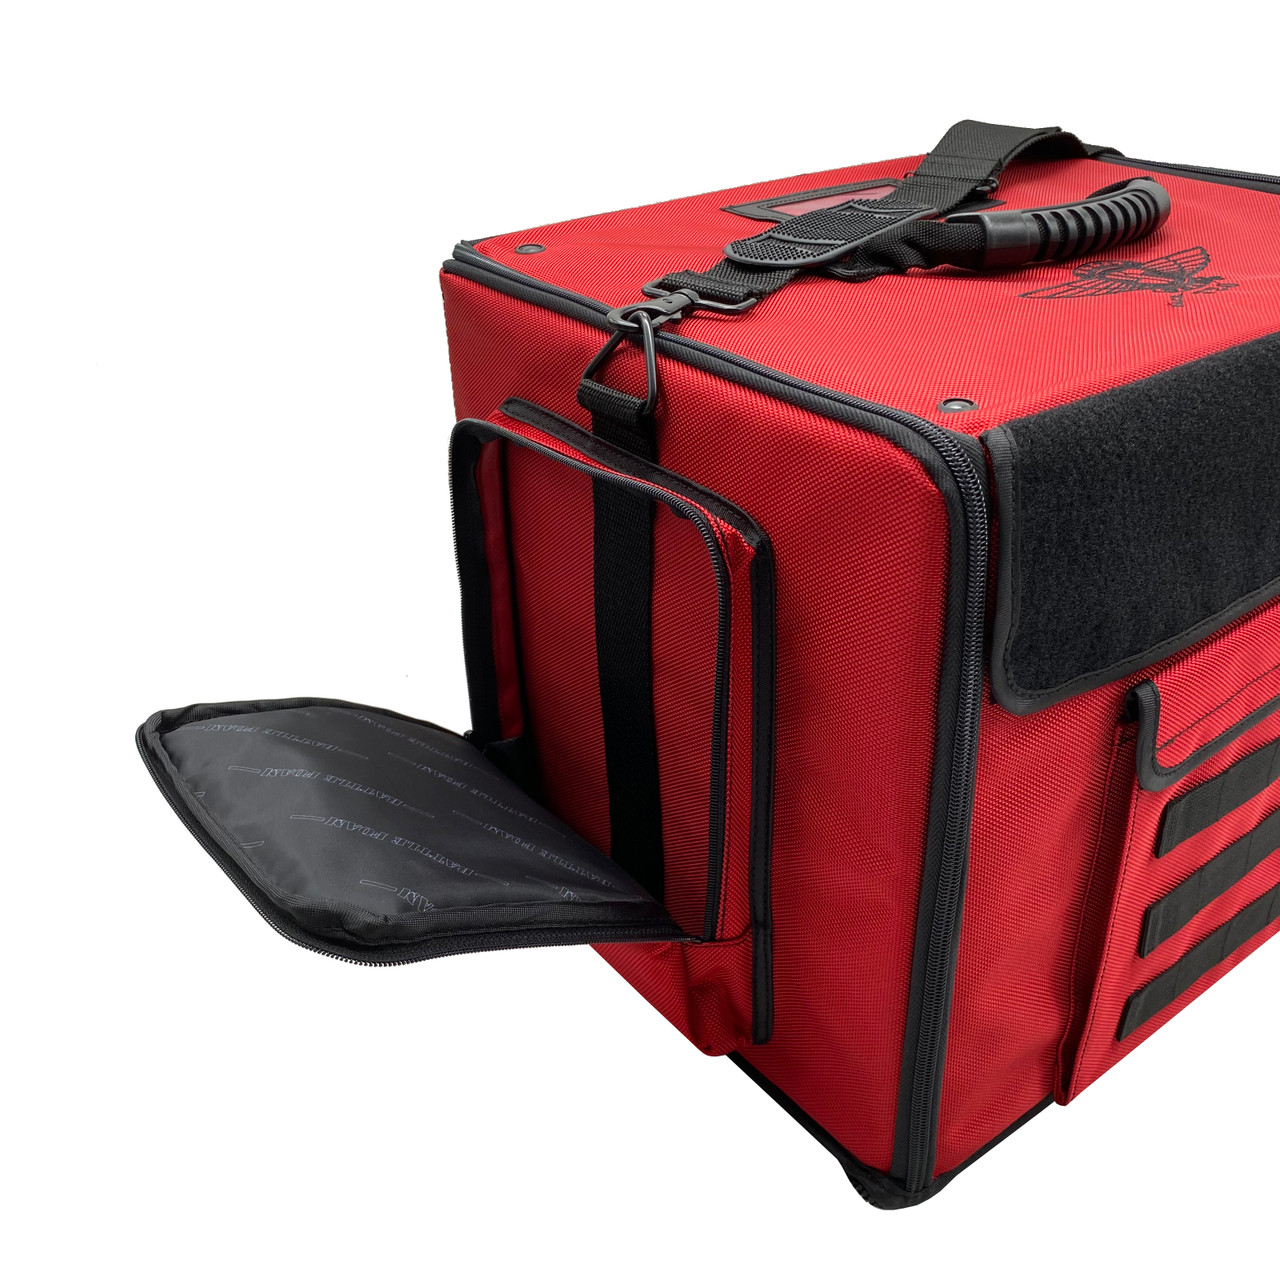 720 P A C K 720 Molle With Magna Rack Original Load Out Battle Foam The magna rack sliders trays have been designed for gamers who like to store and transport their miniatures that have been magnetized. battle foam